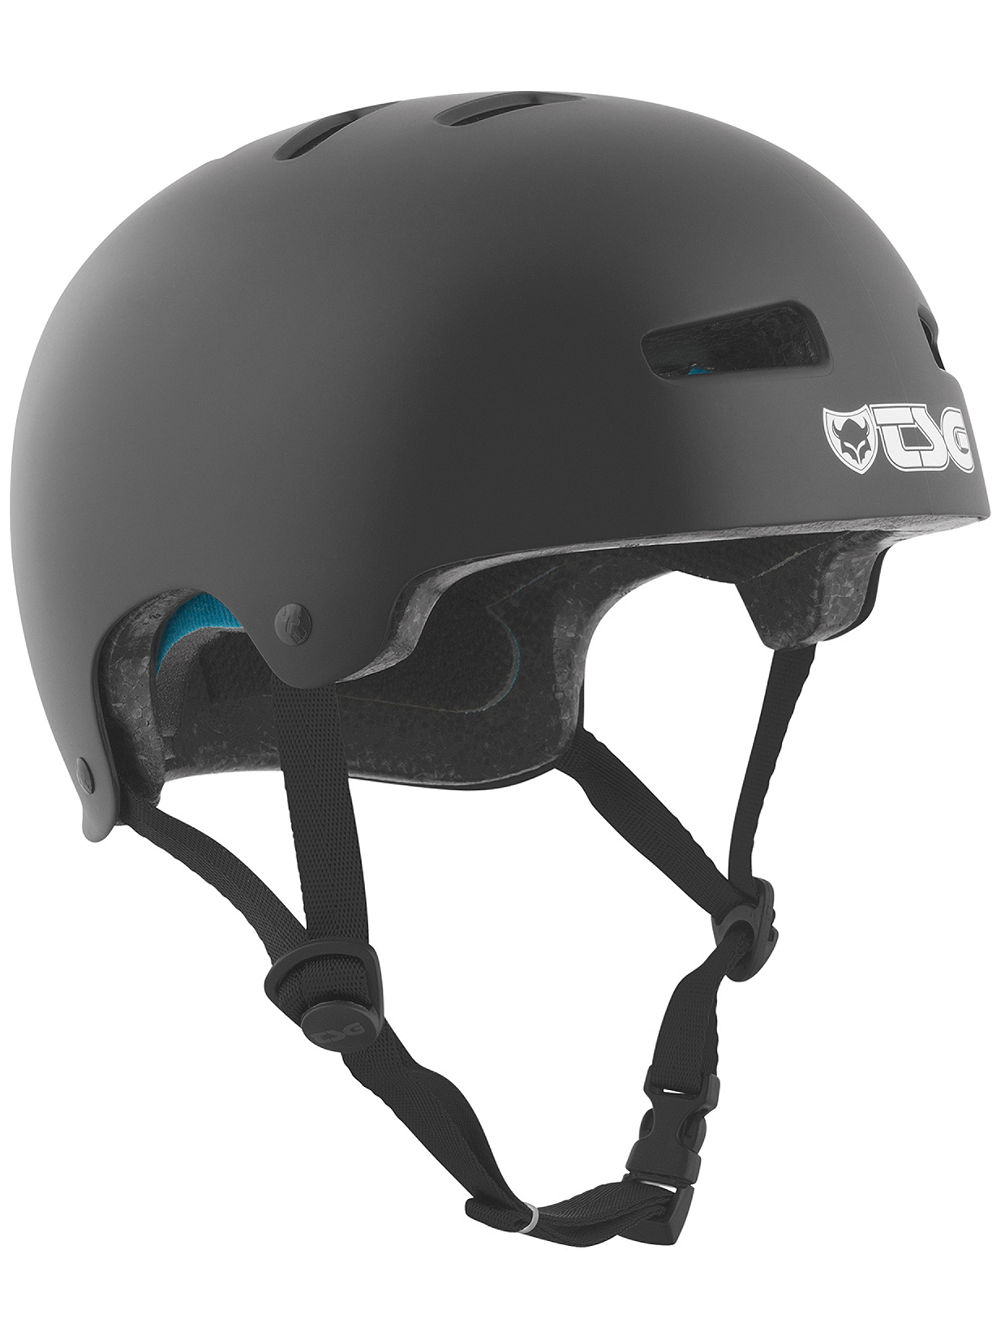 Evolution Helmet